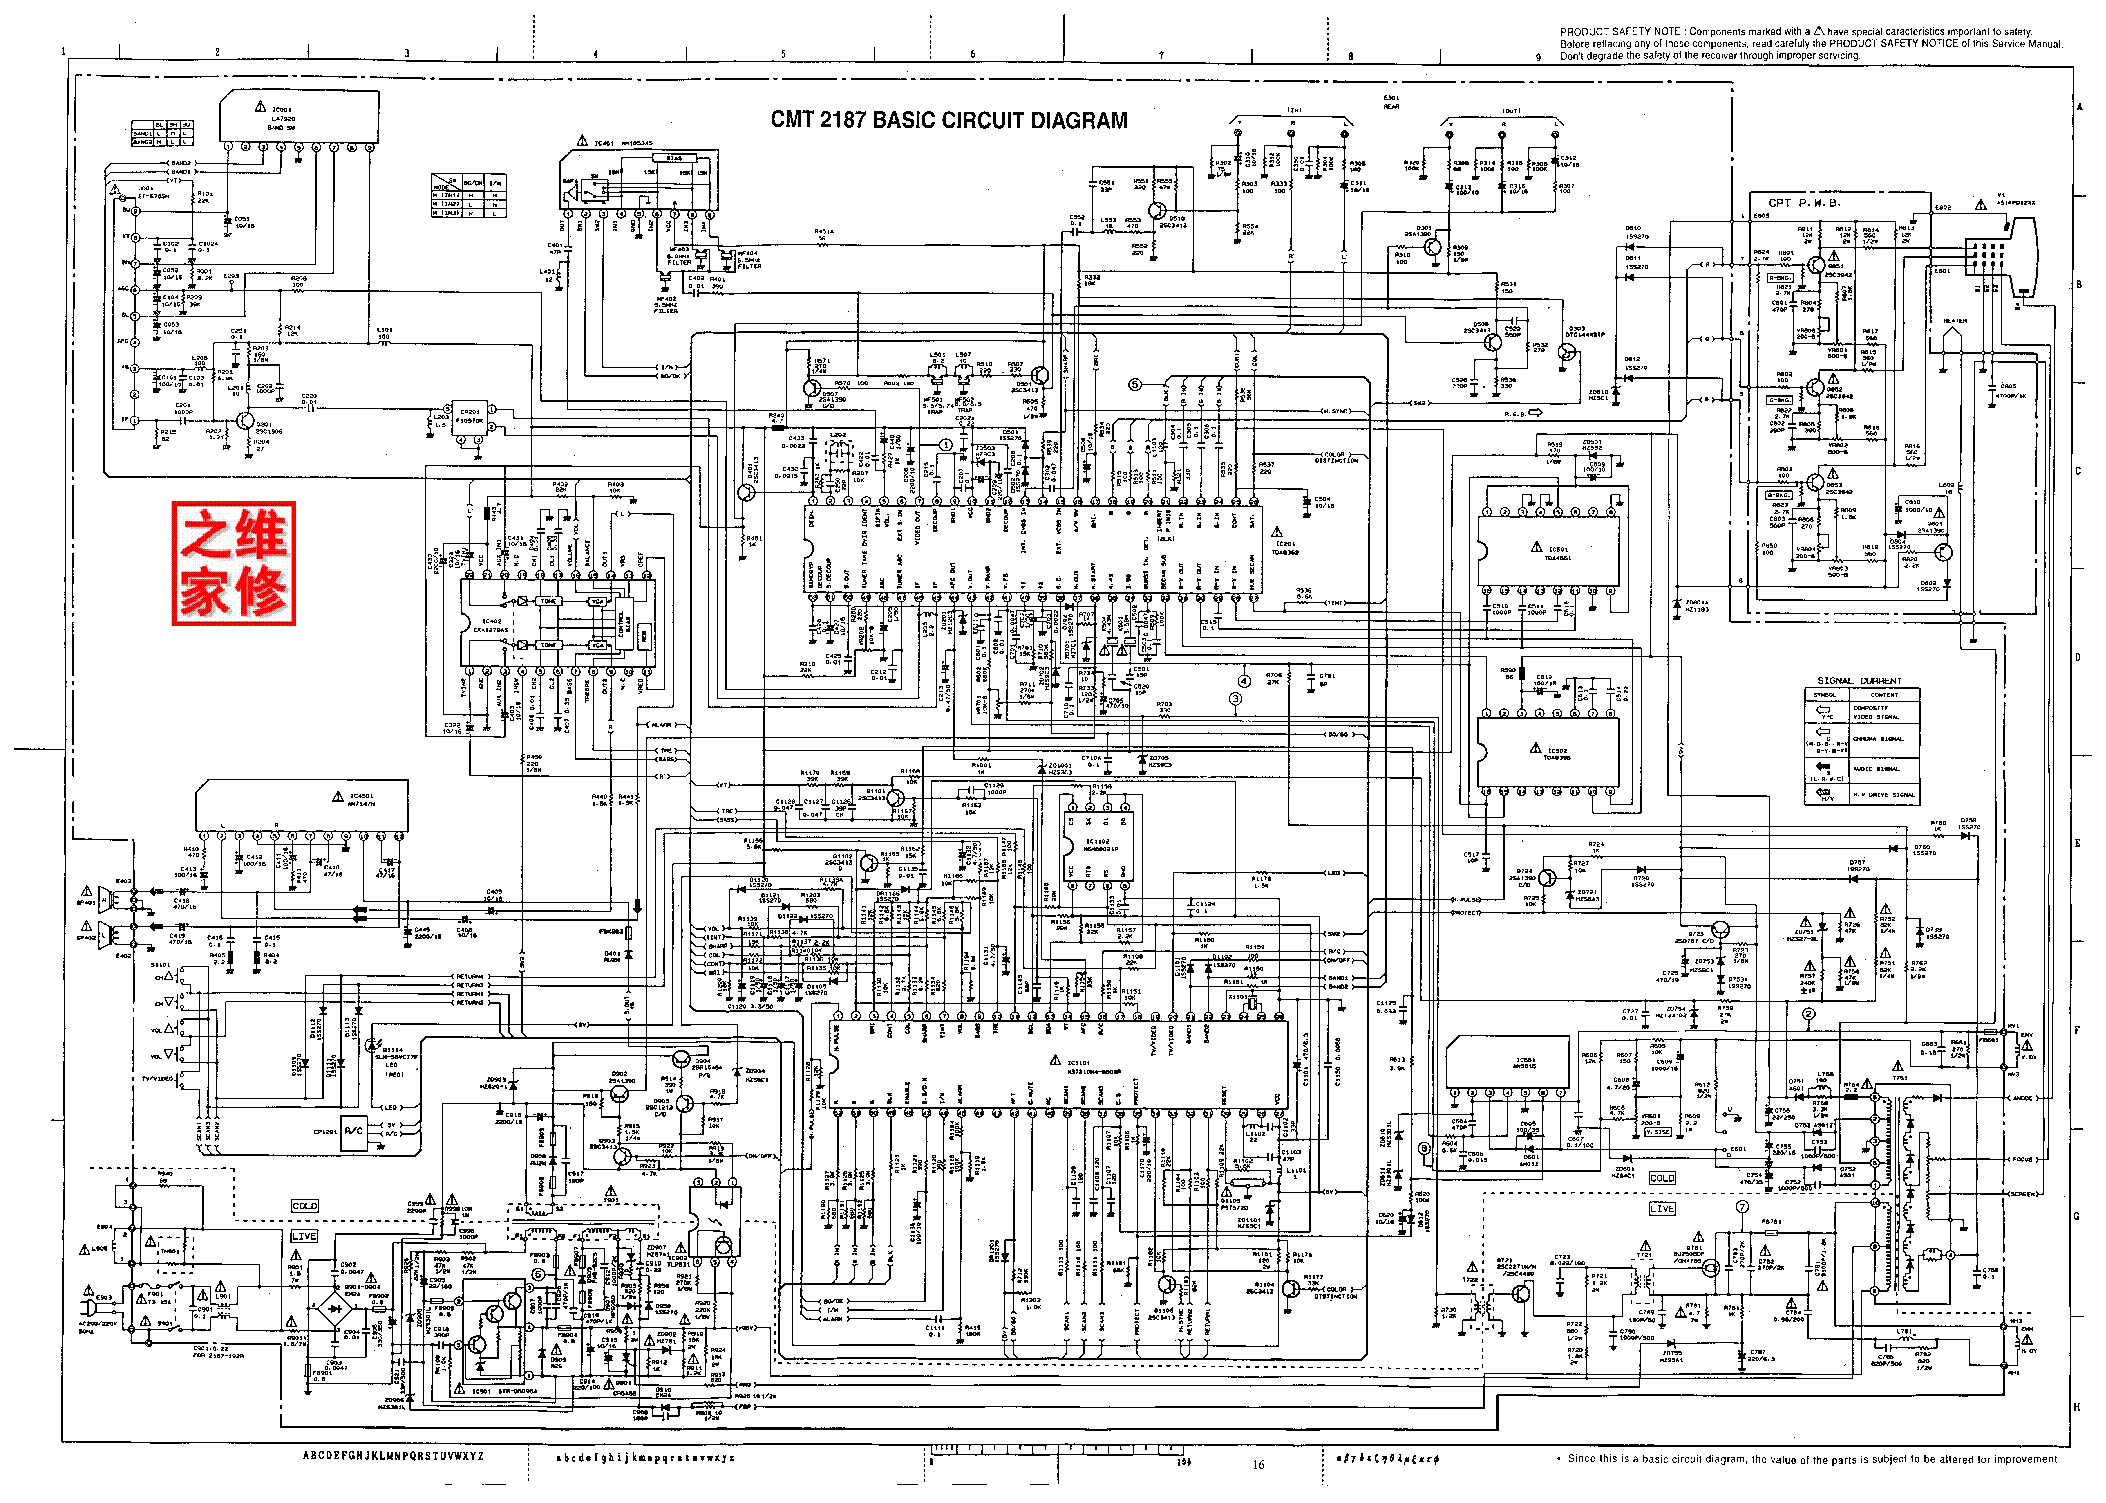 hitachi cmt2187-basic-circuit-diagram-1 service manual (1st page)